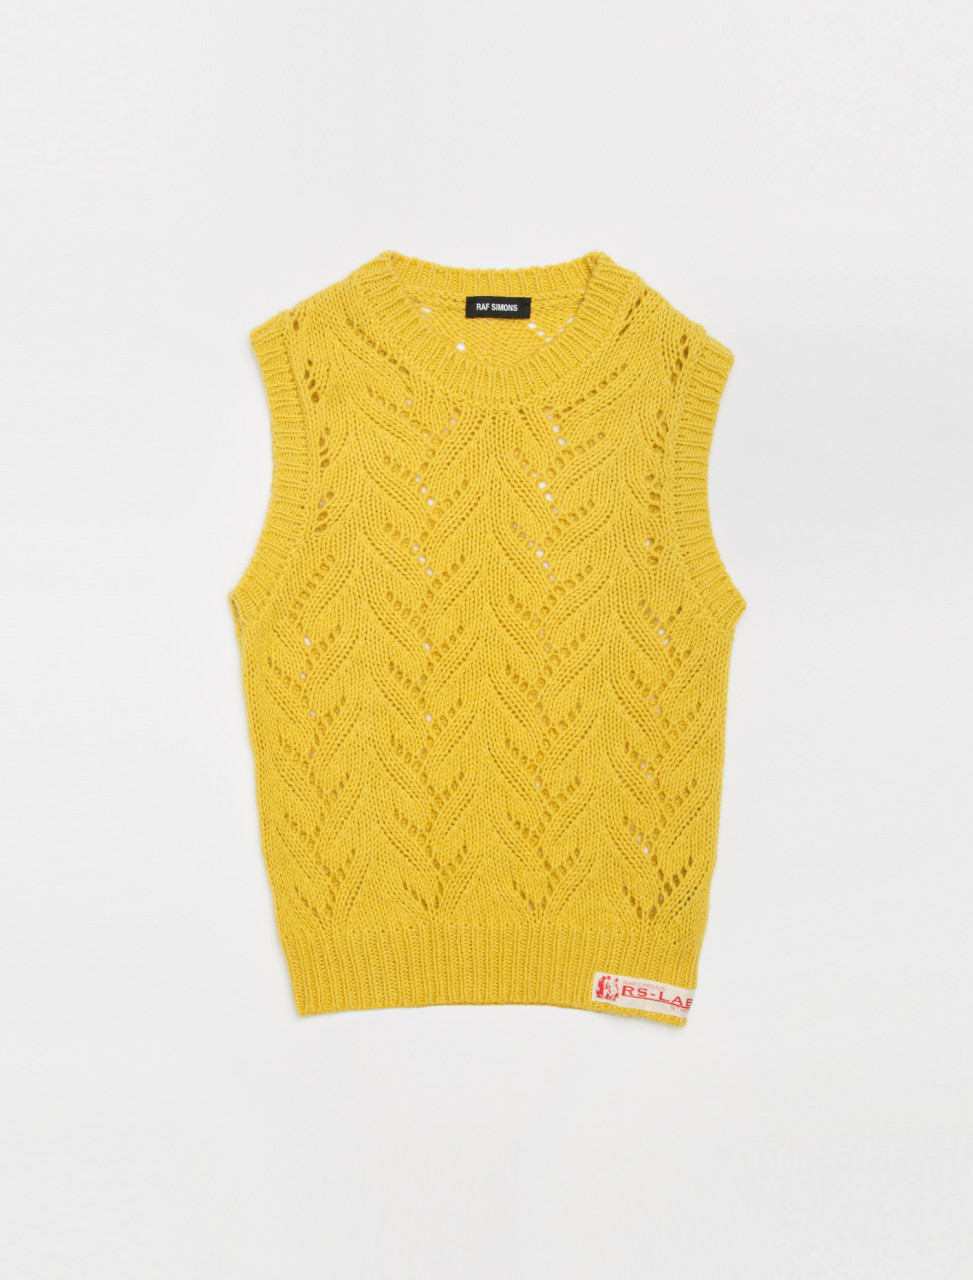 Sleeveless Gilet with Woven Label